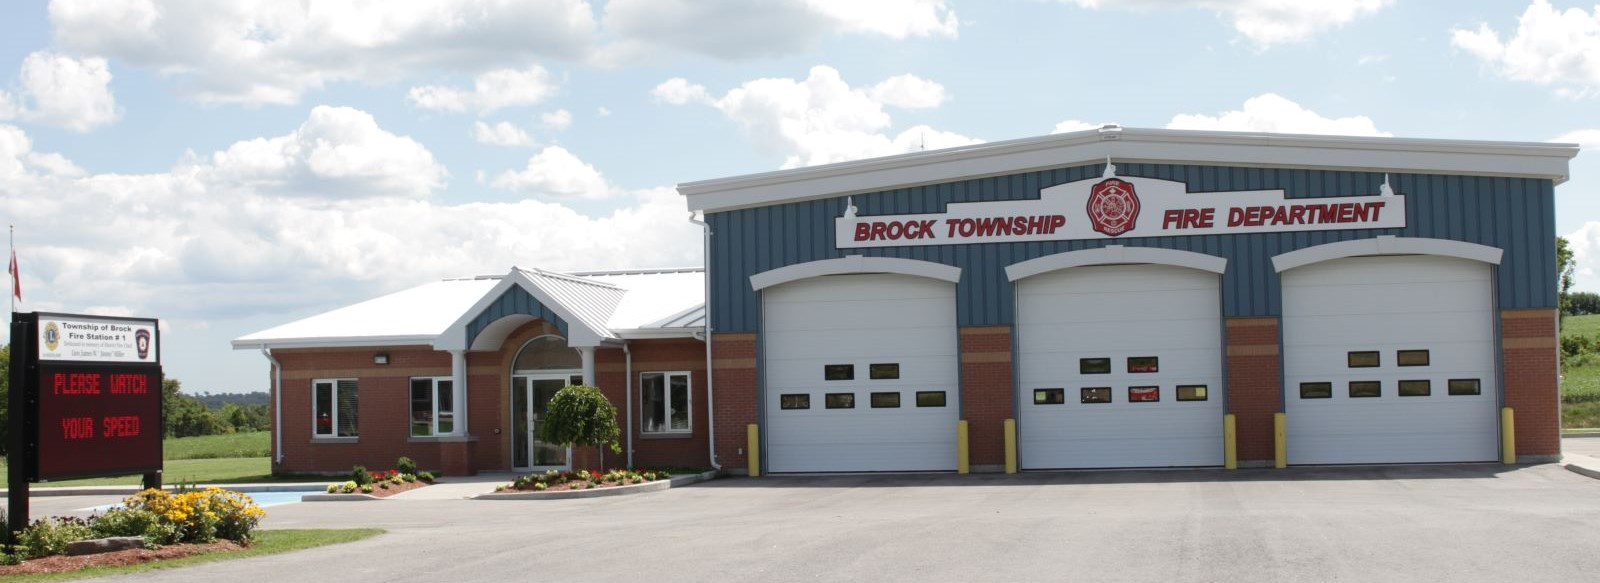 Brock Fire Department in Sunderland